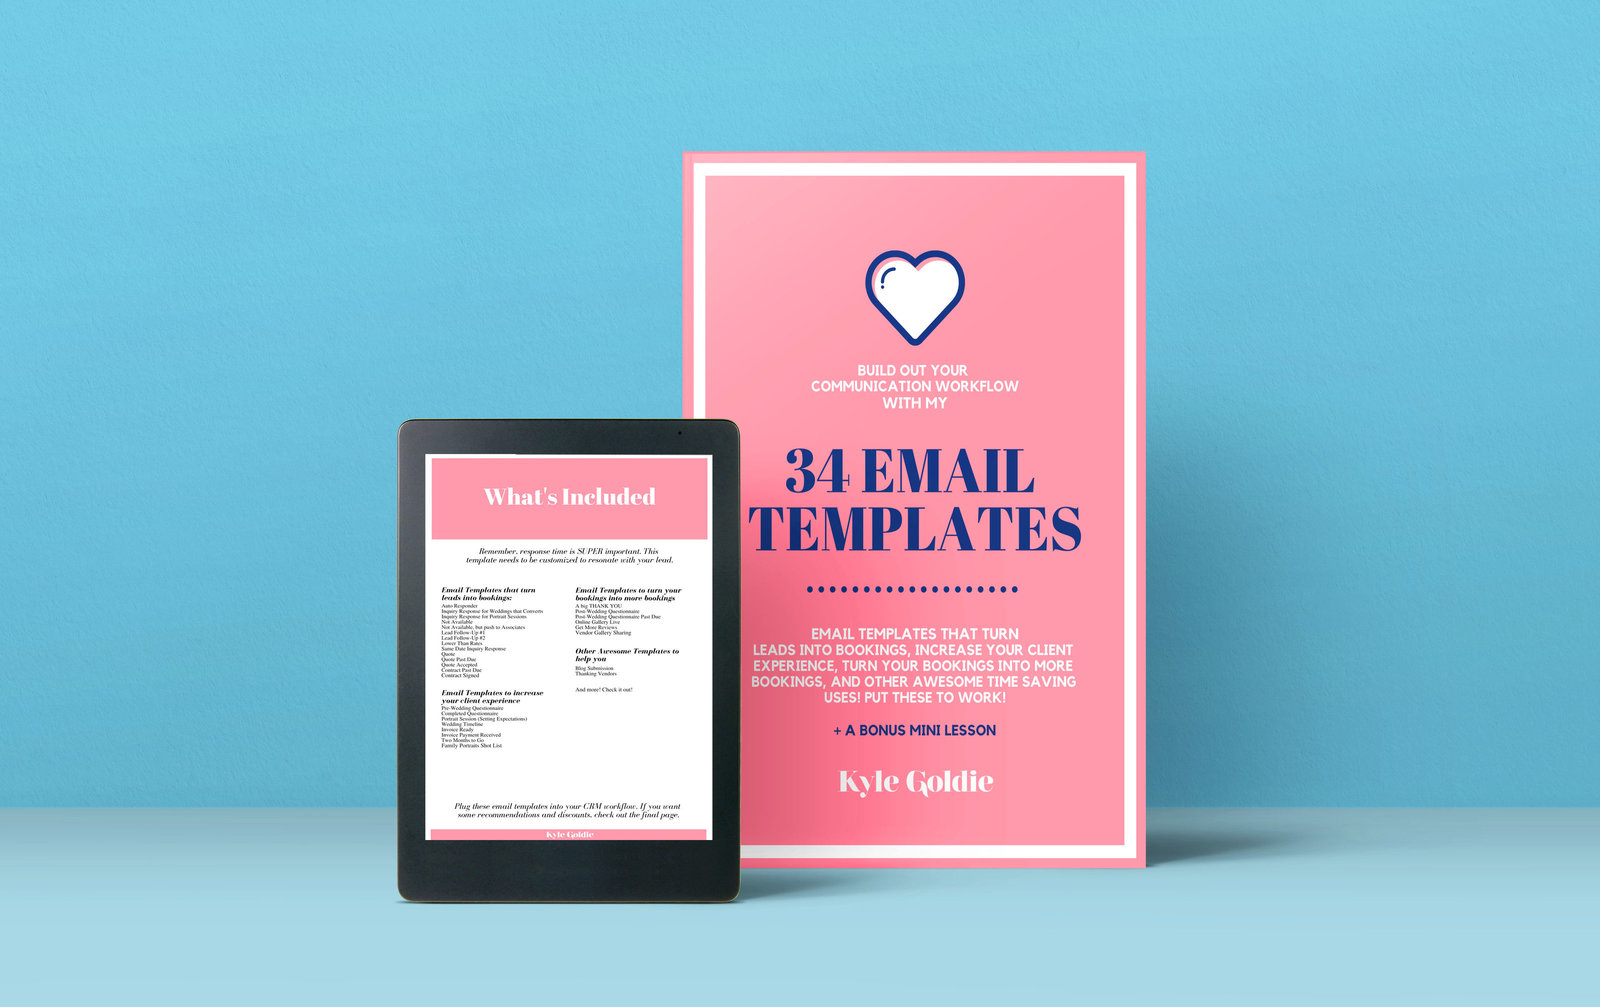 Wedding Business Email Templates Mockup Kyle Goldie 2